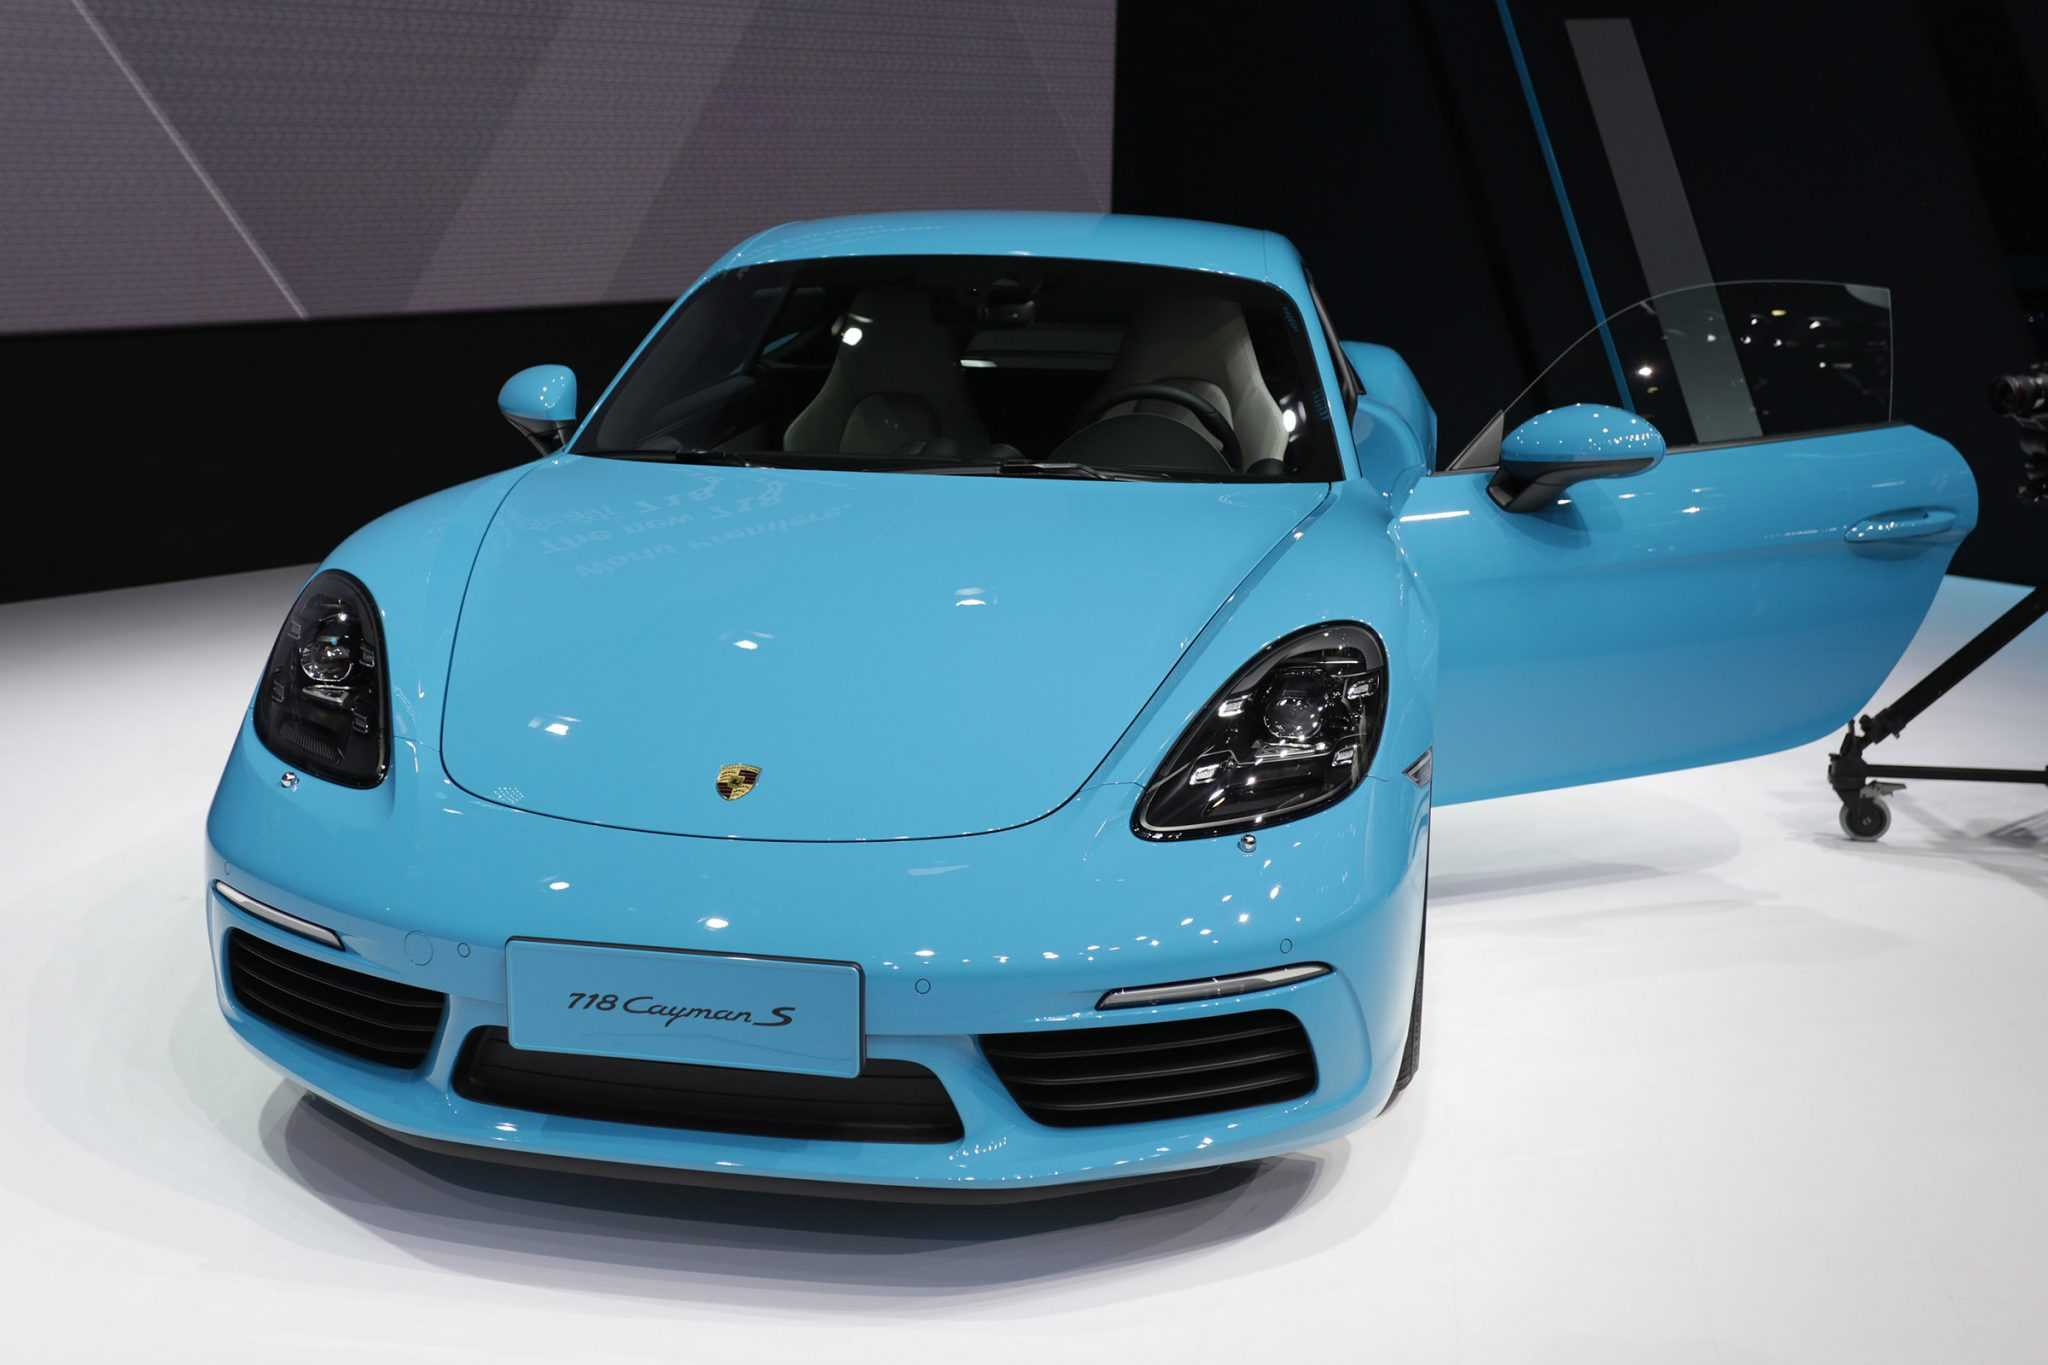 Porsche 718 Cayman Gets Upgraded With Four Cylinder Turbo Power Engine